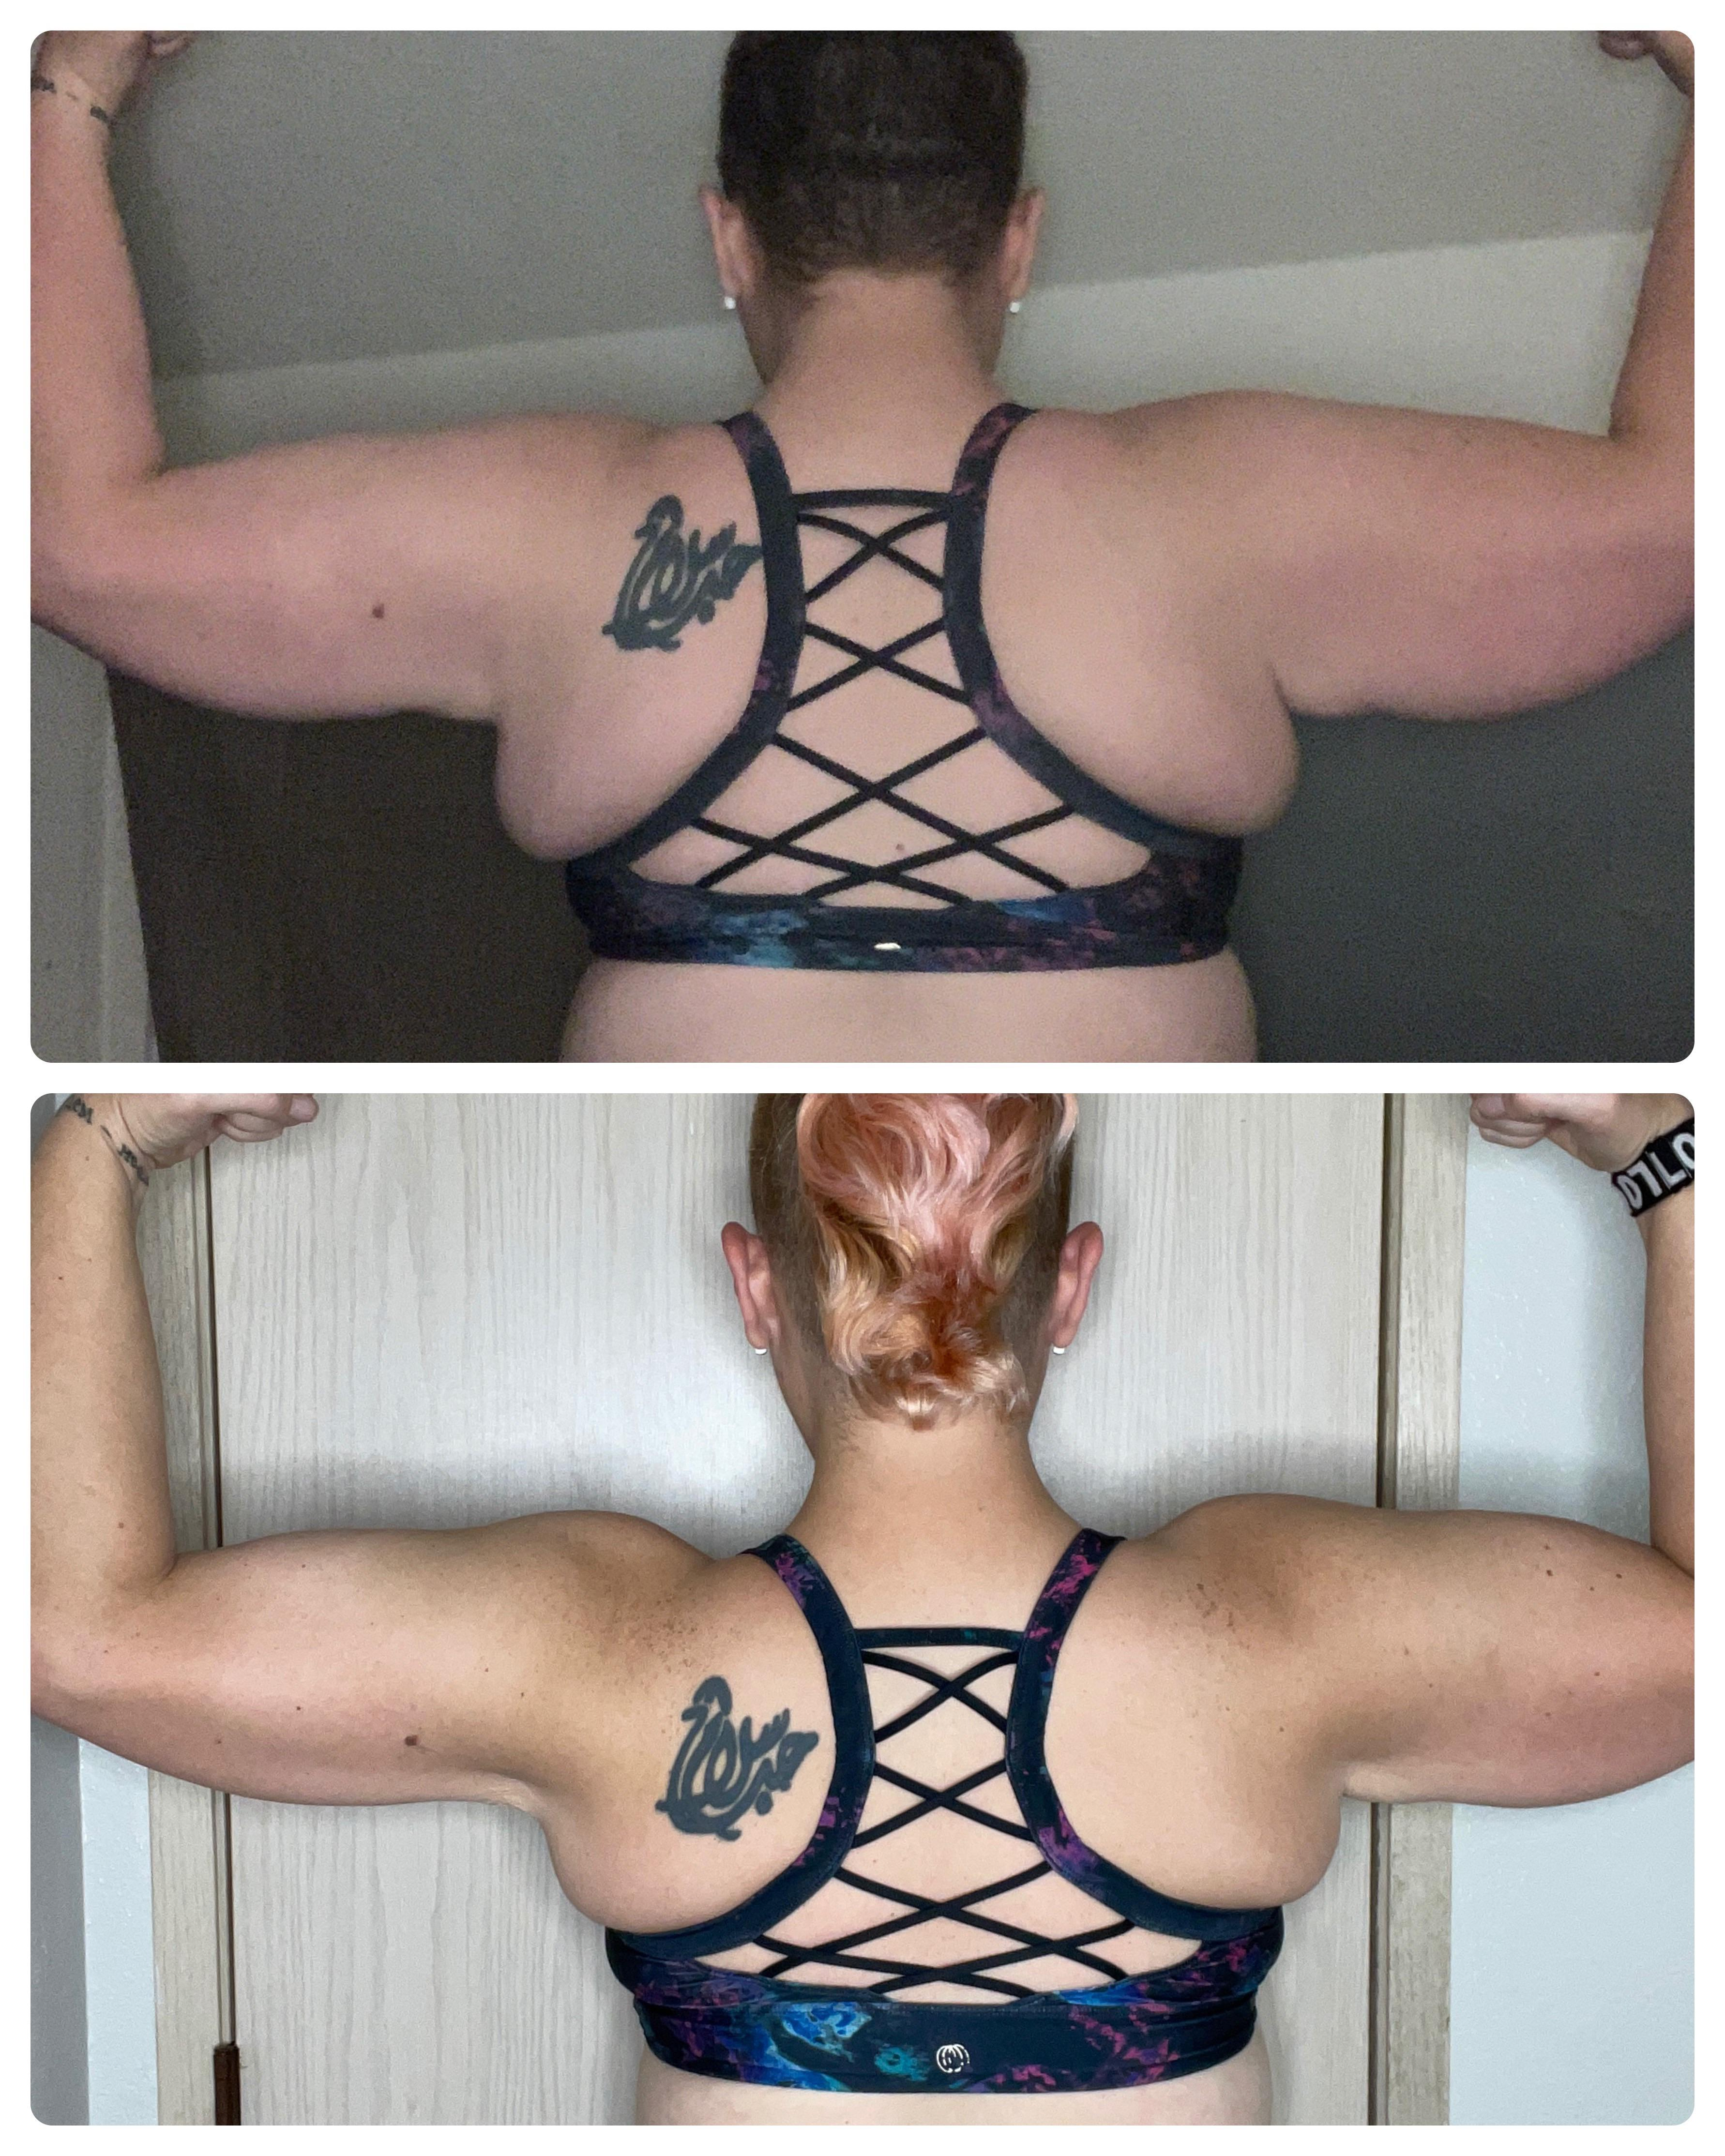 5'7 Female 35 lbs Fat Loss Before and After 225 lbs to 190 lbs